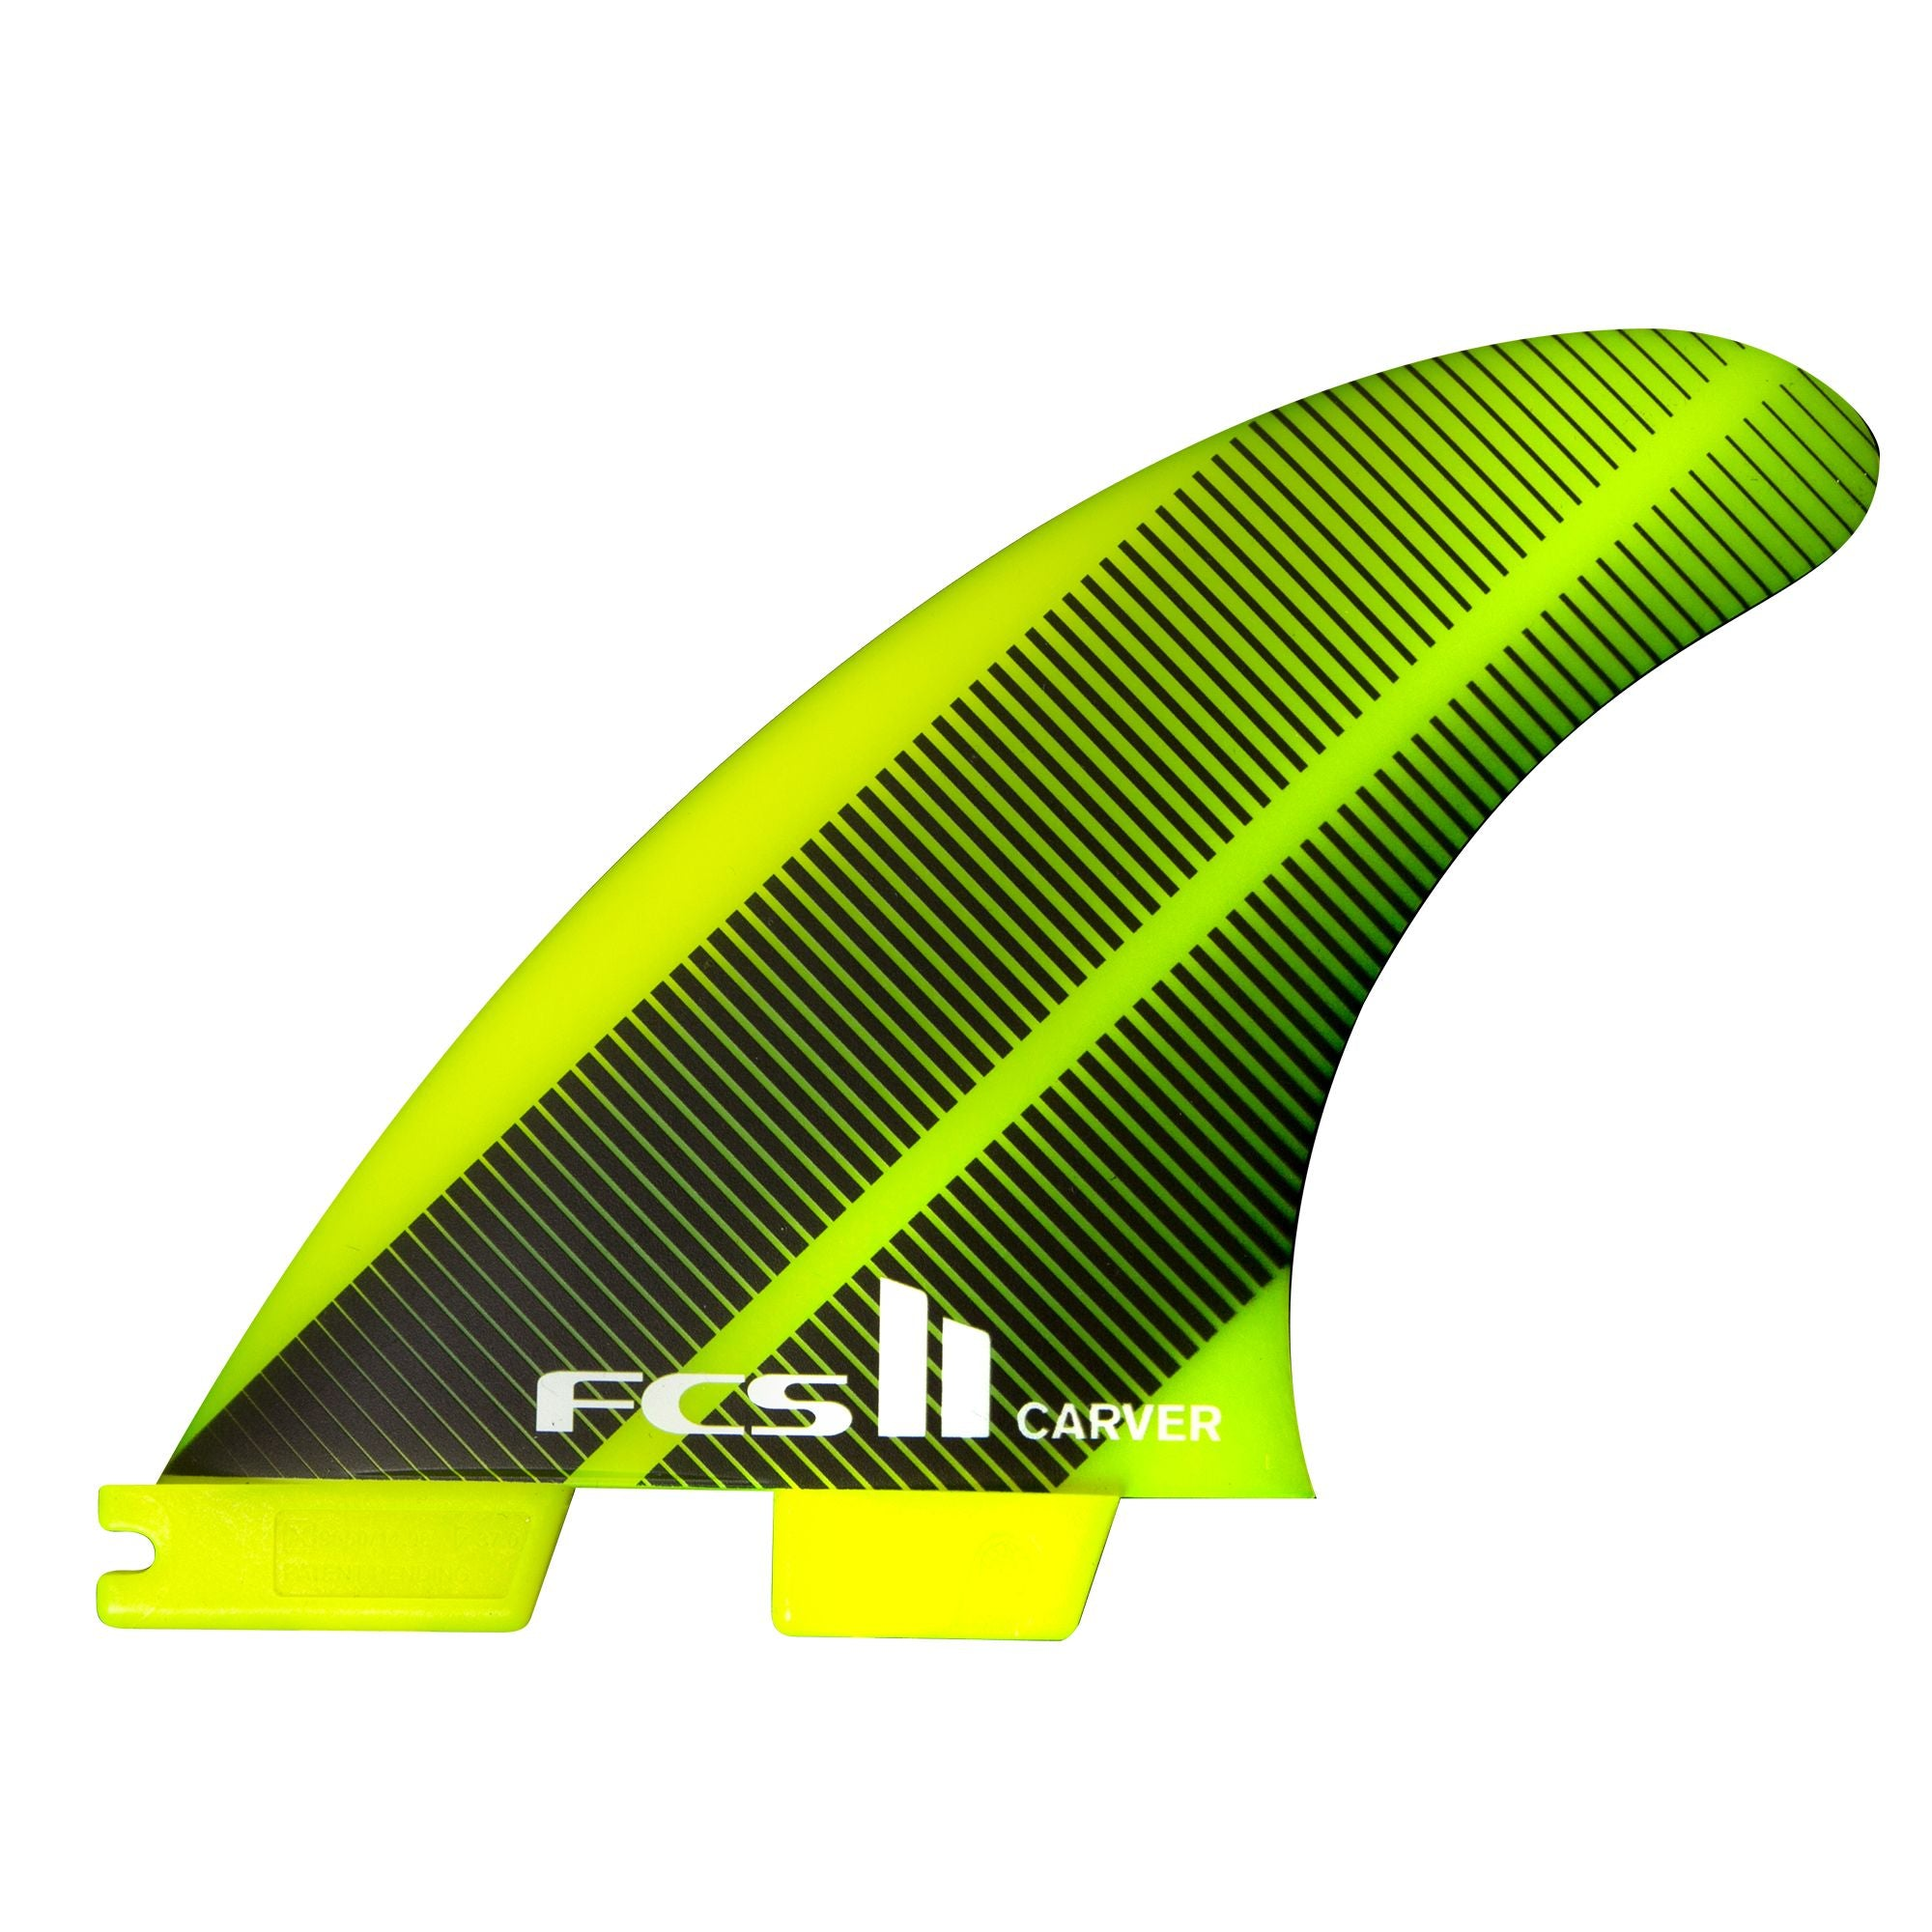 Carver | Thruster Fin Set | Neo Glass | FCS 2